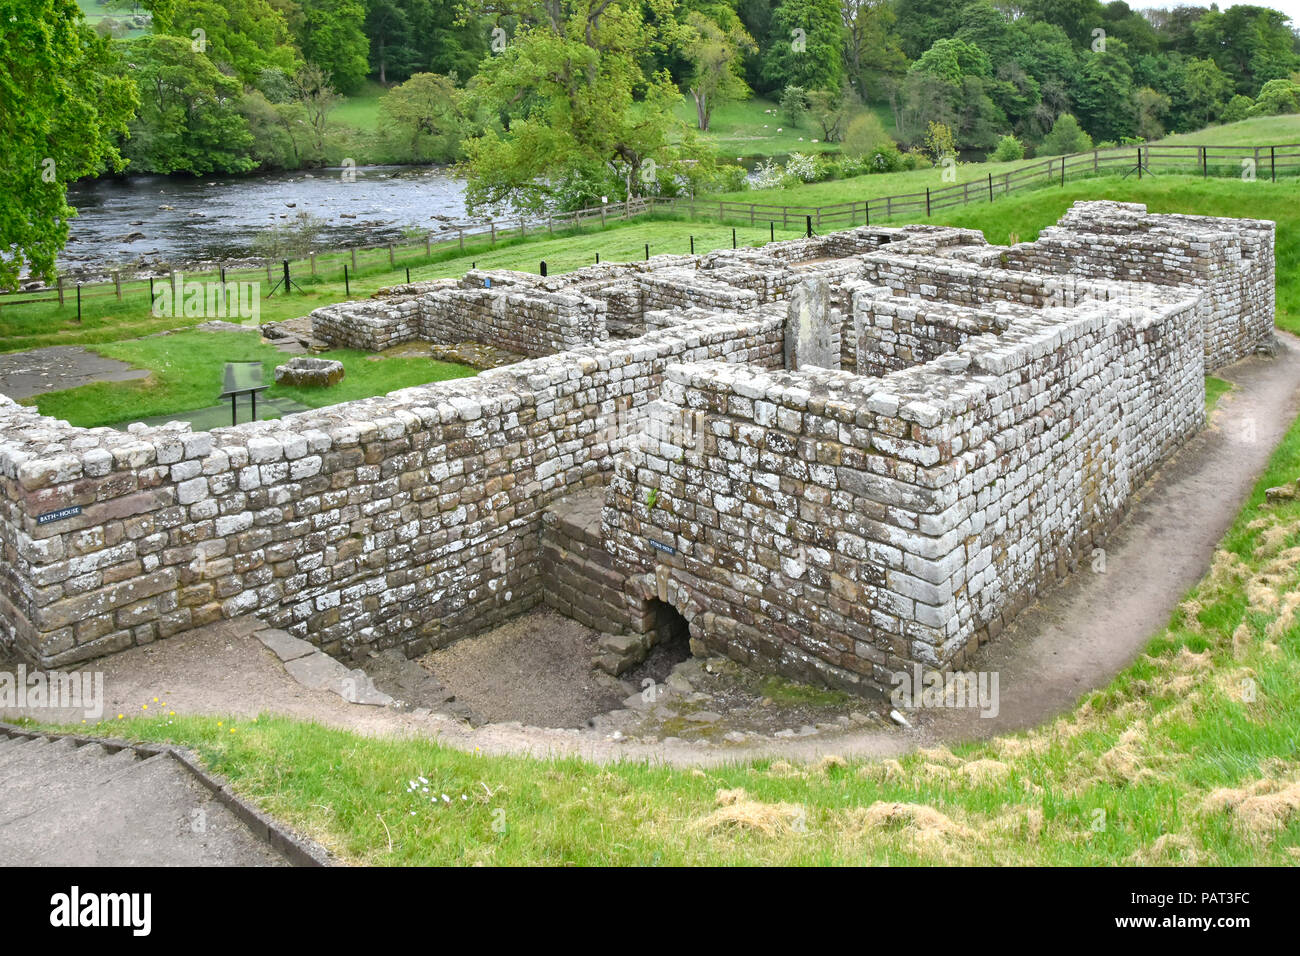 Historical Chesters Roman cavalry fort on Hadrians Wall Roman Bathhouse remains of stone buildings beside River North Tyne Walwick Northumberland UK - Stock Image